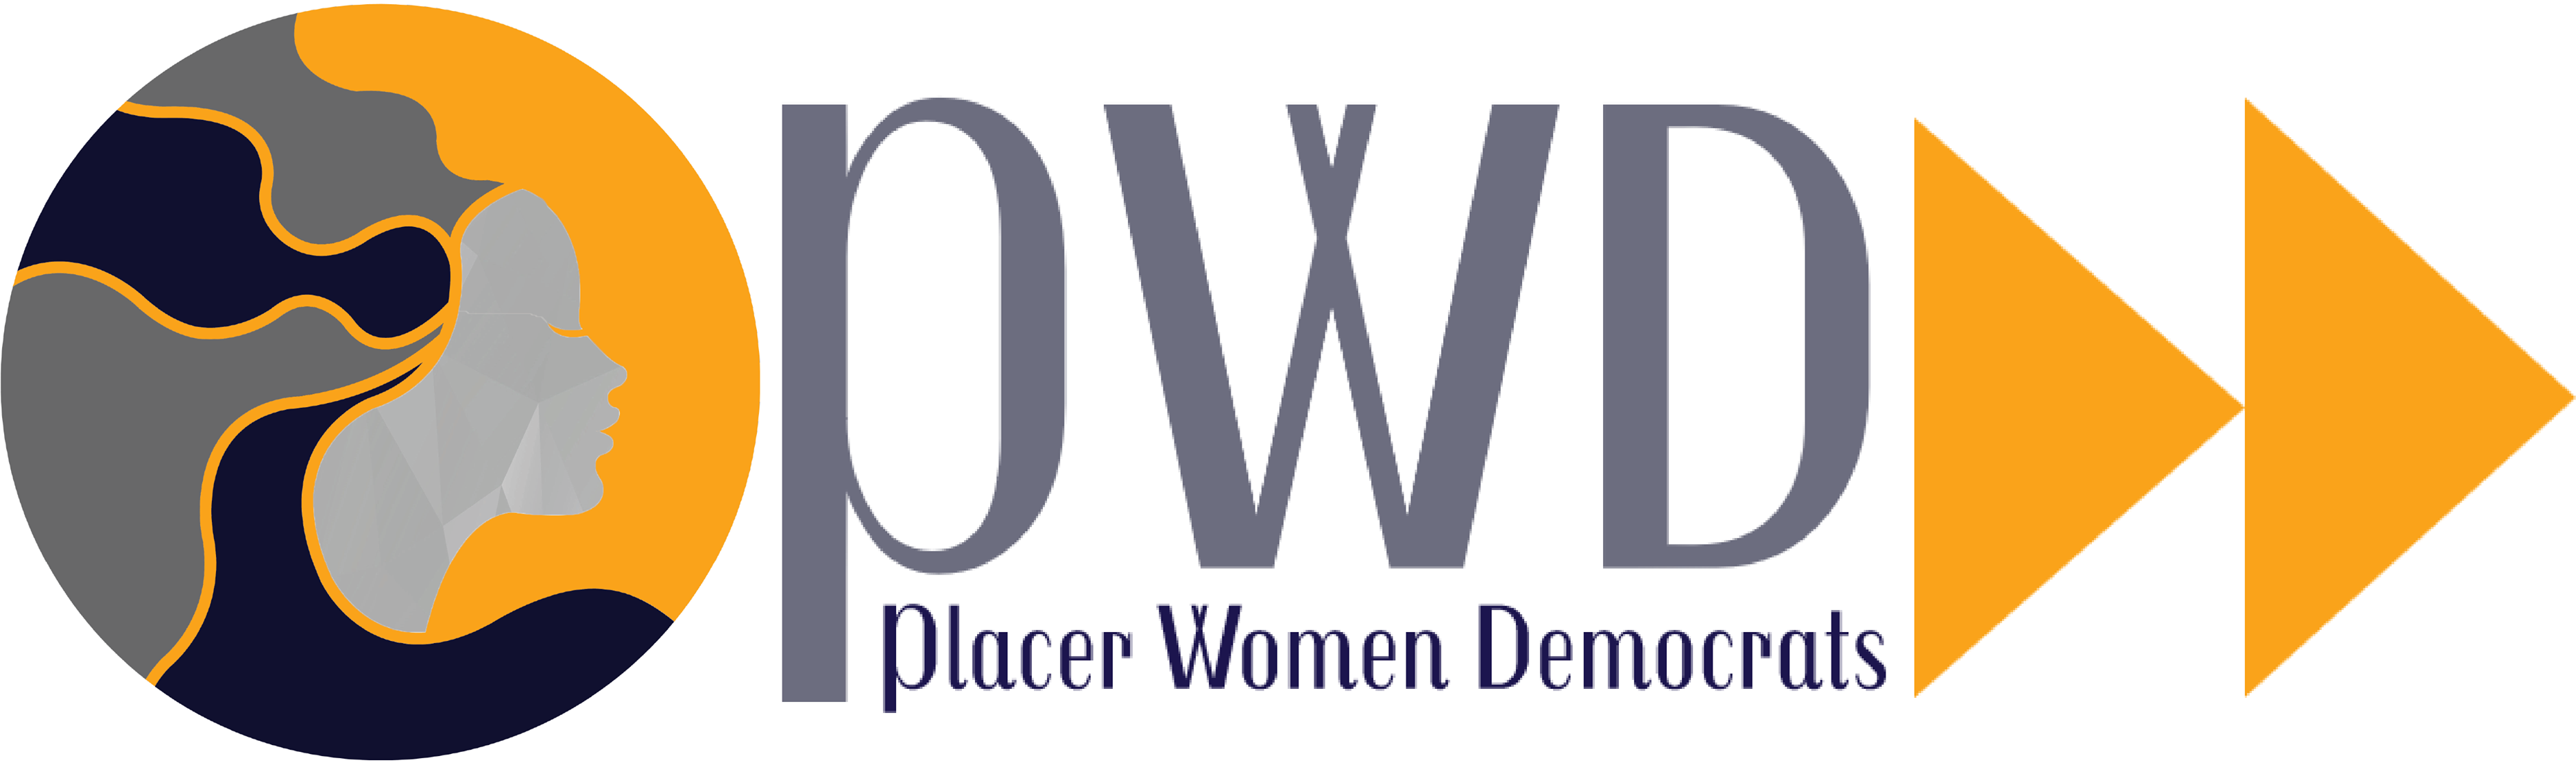 Placer Women Democrats (CA)